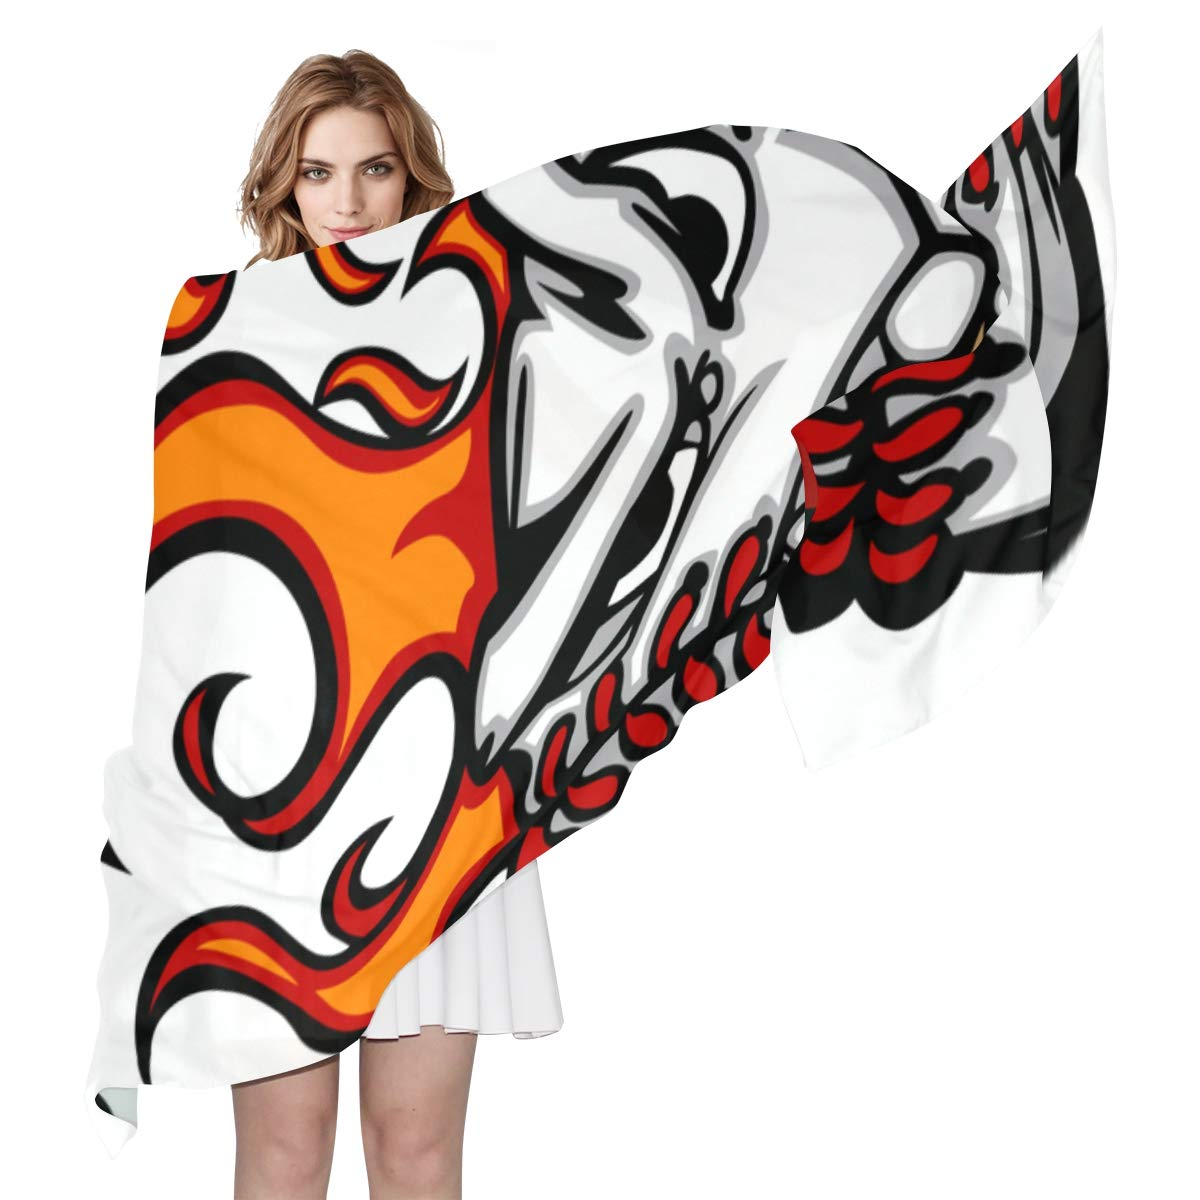 Baseball Player Hitting The Ball Unique Fashion Scarf For Women Lightweight Fashion Fall Winter Print Scarves Shawl Wraps Gifts For Early Spring